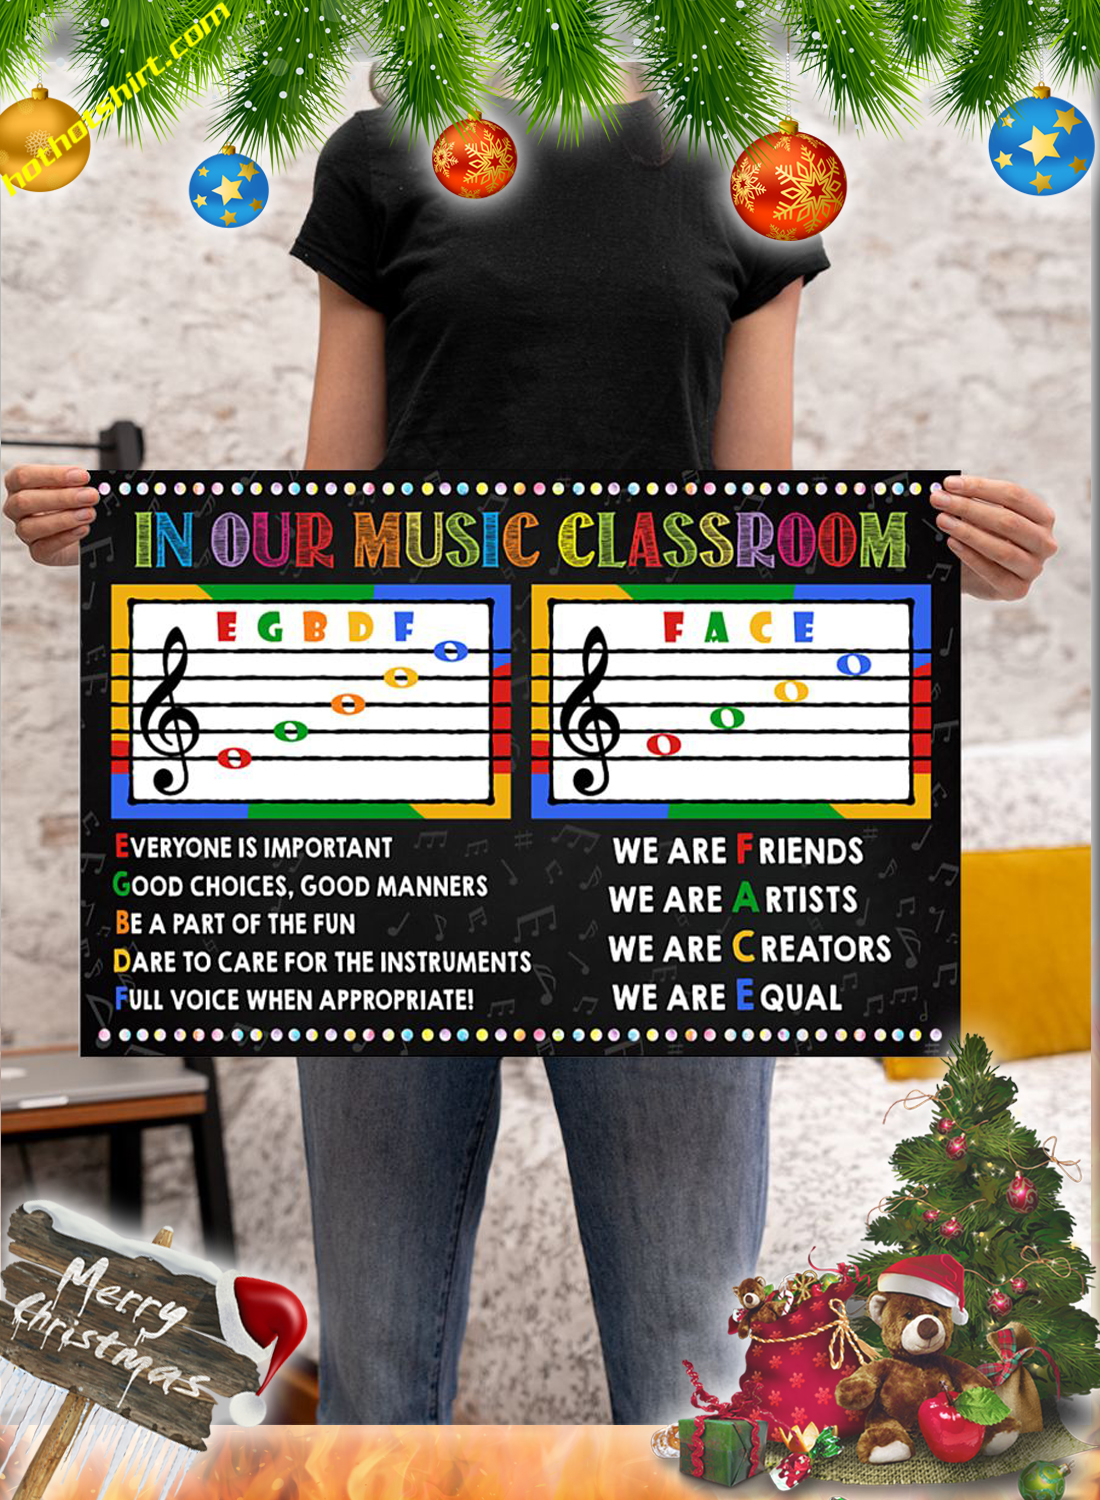 In our music classroom poster 2